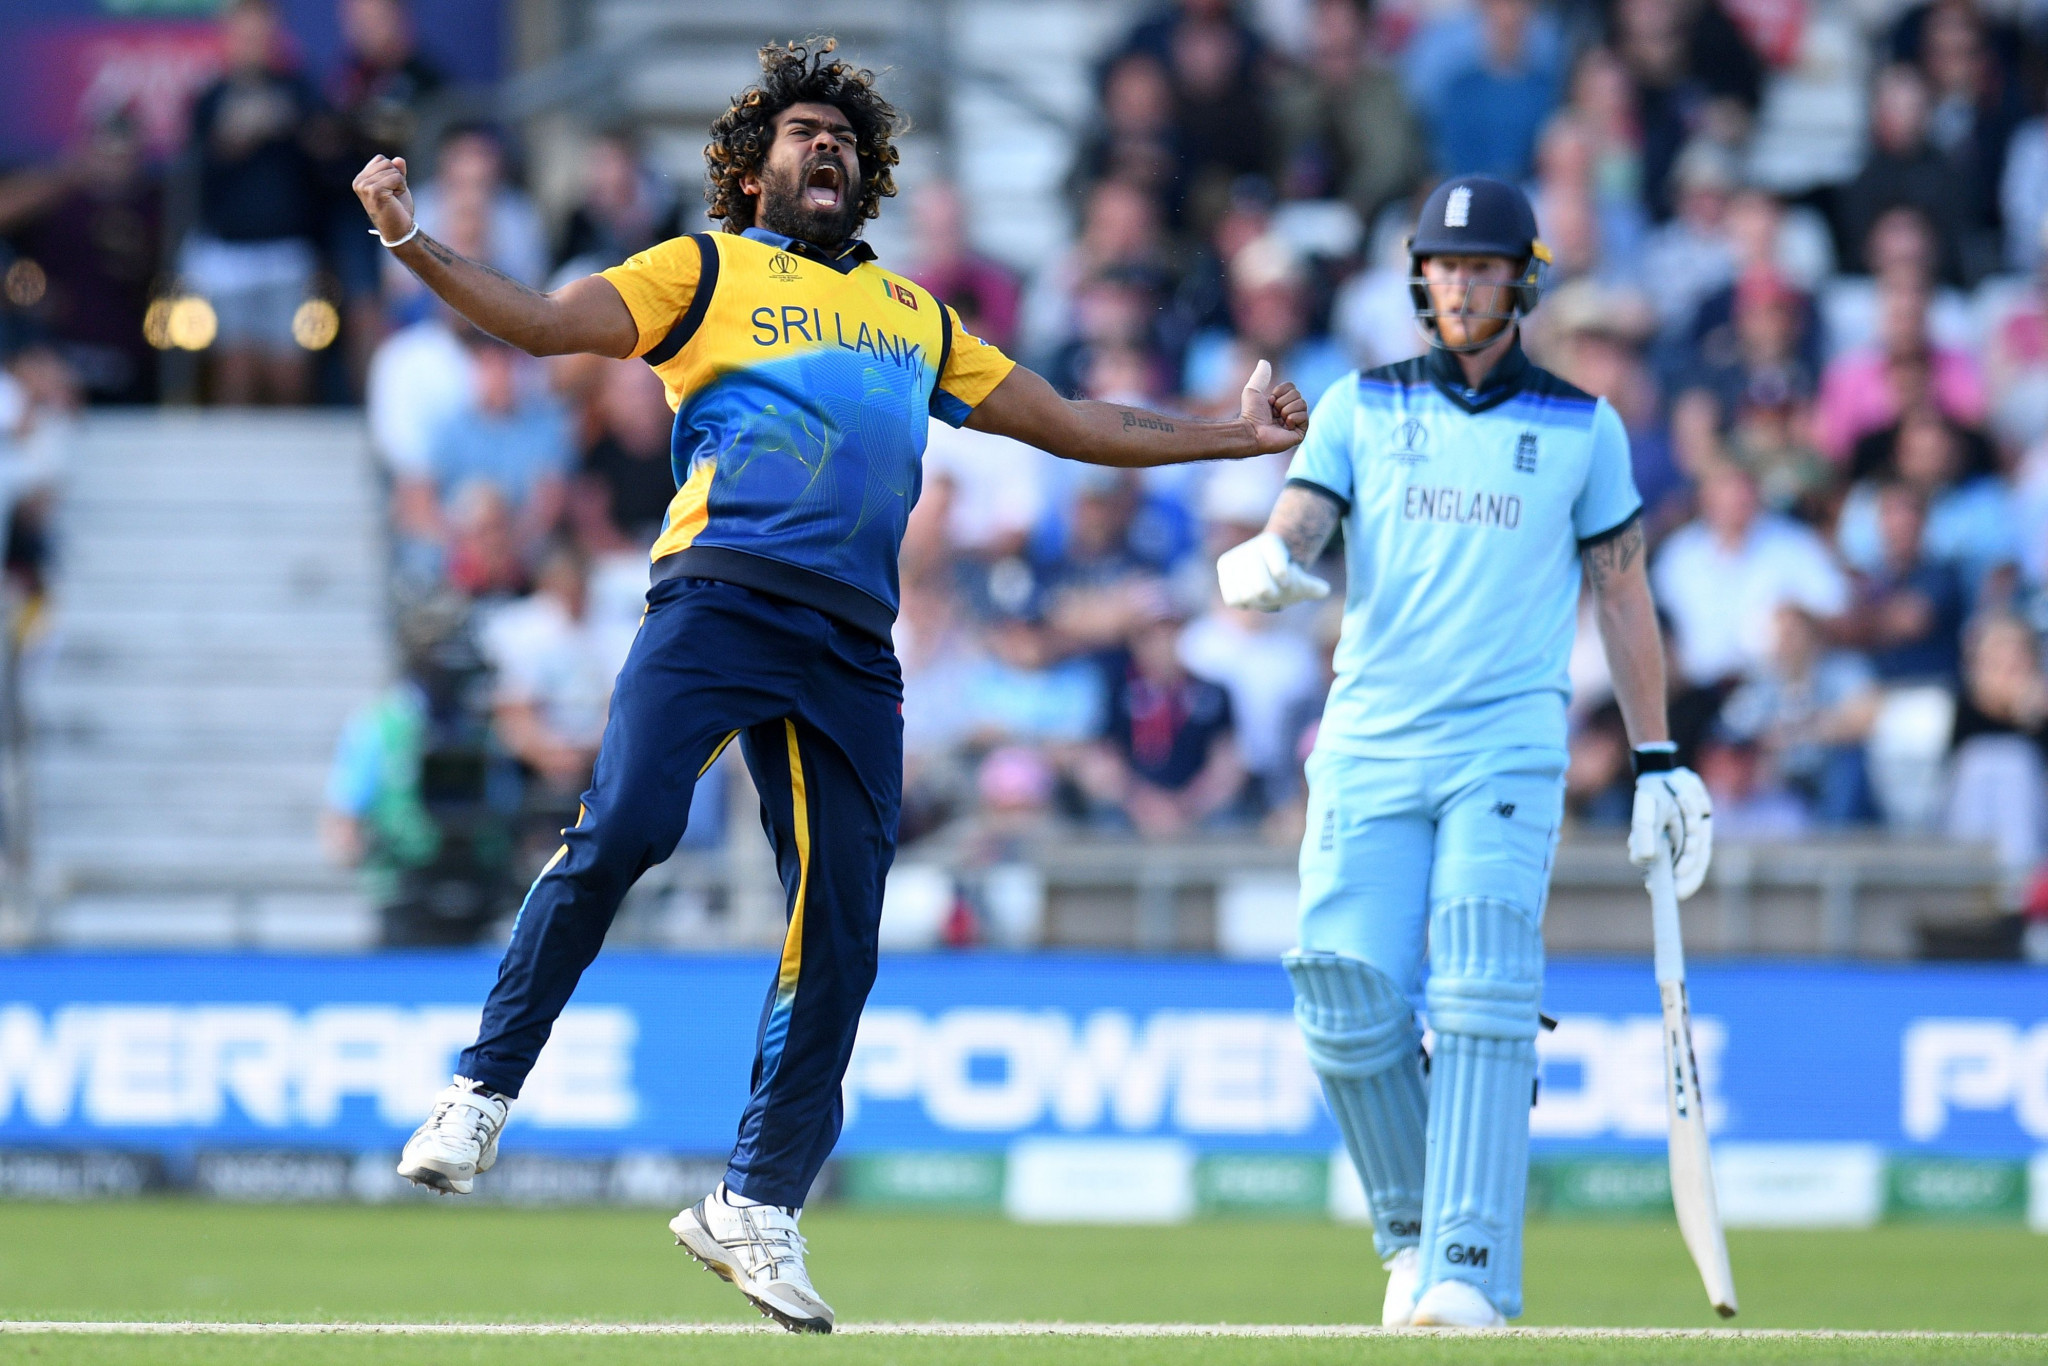 Sri Lanka stun England to blow race for semi-final places wide open at Cricket World Cup